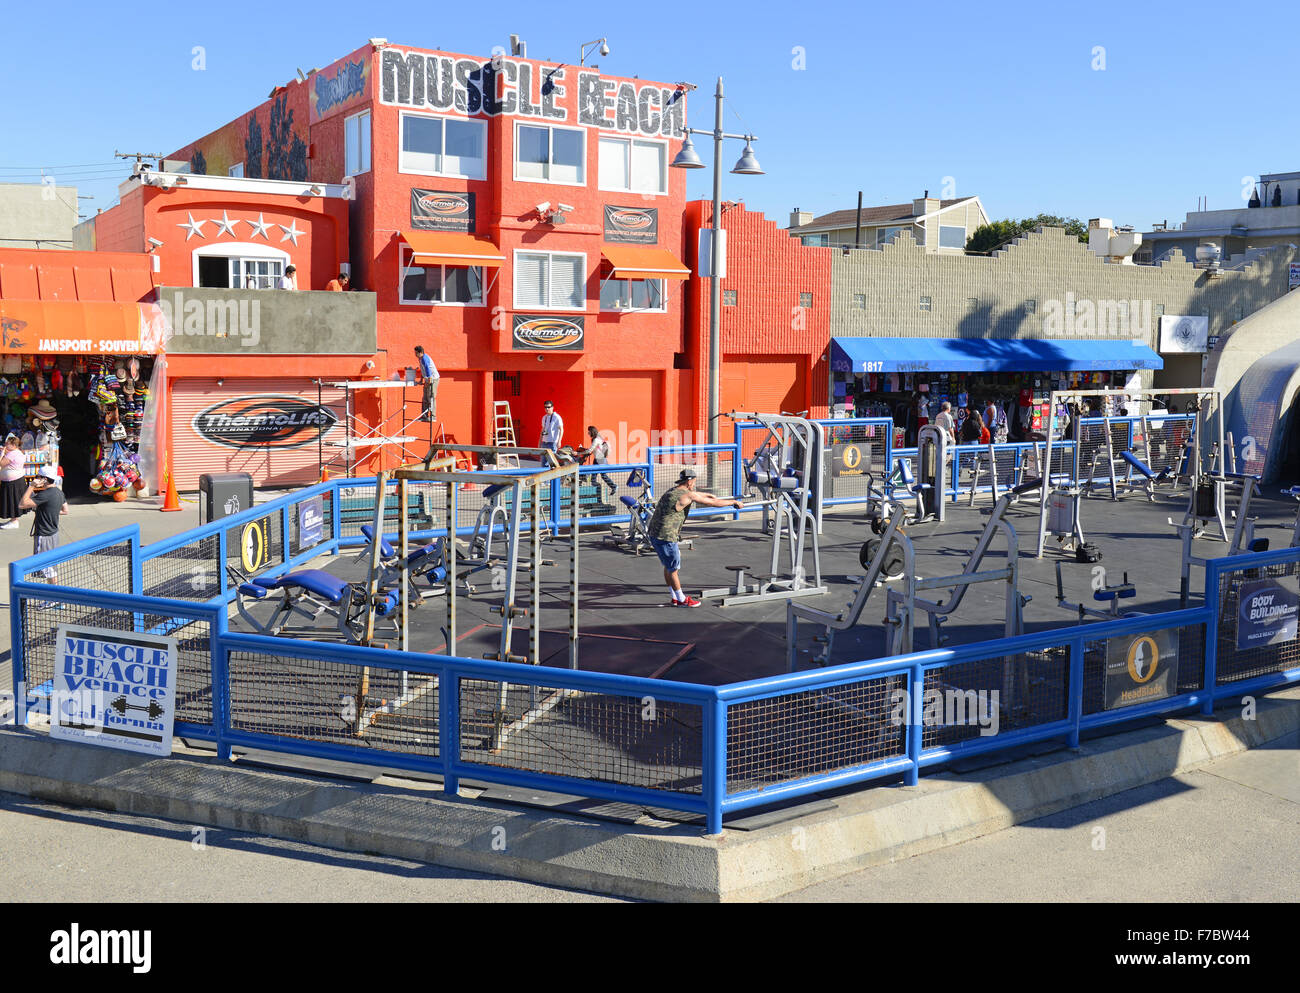 Muscle Beach Venice Ca